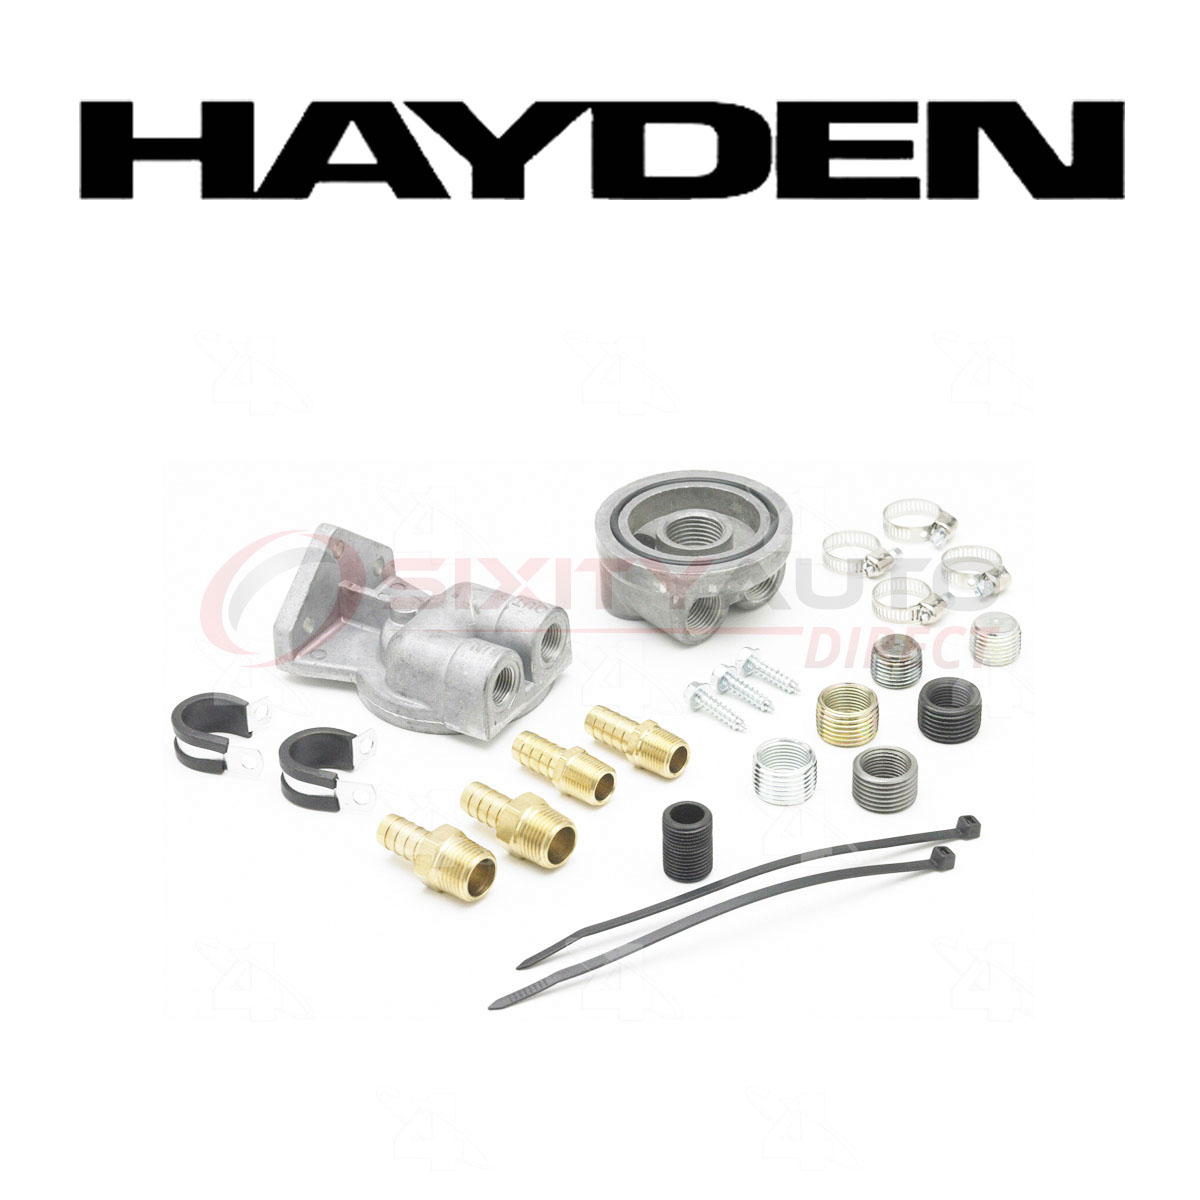 Hayden Oil Filter Remote Mounting Kit for 2007 Toyota